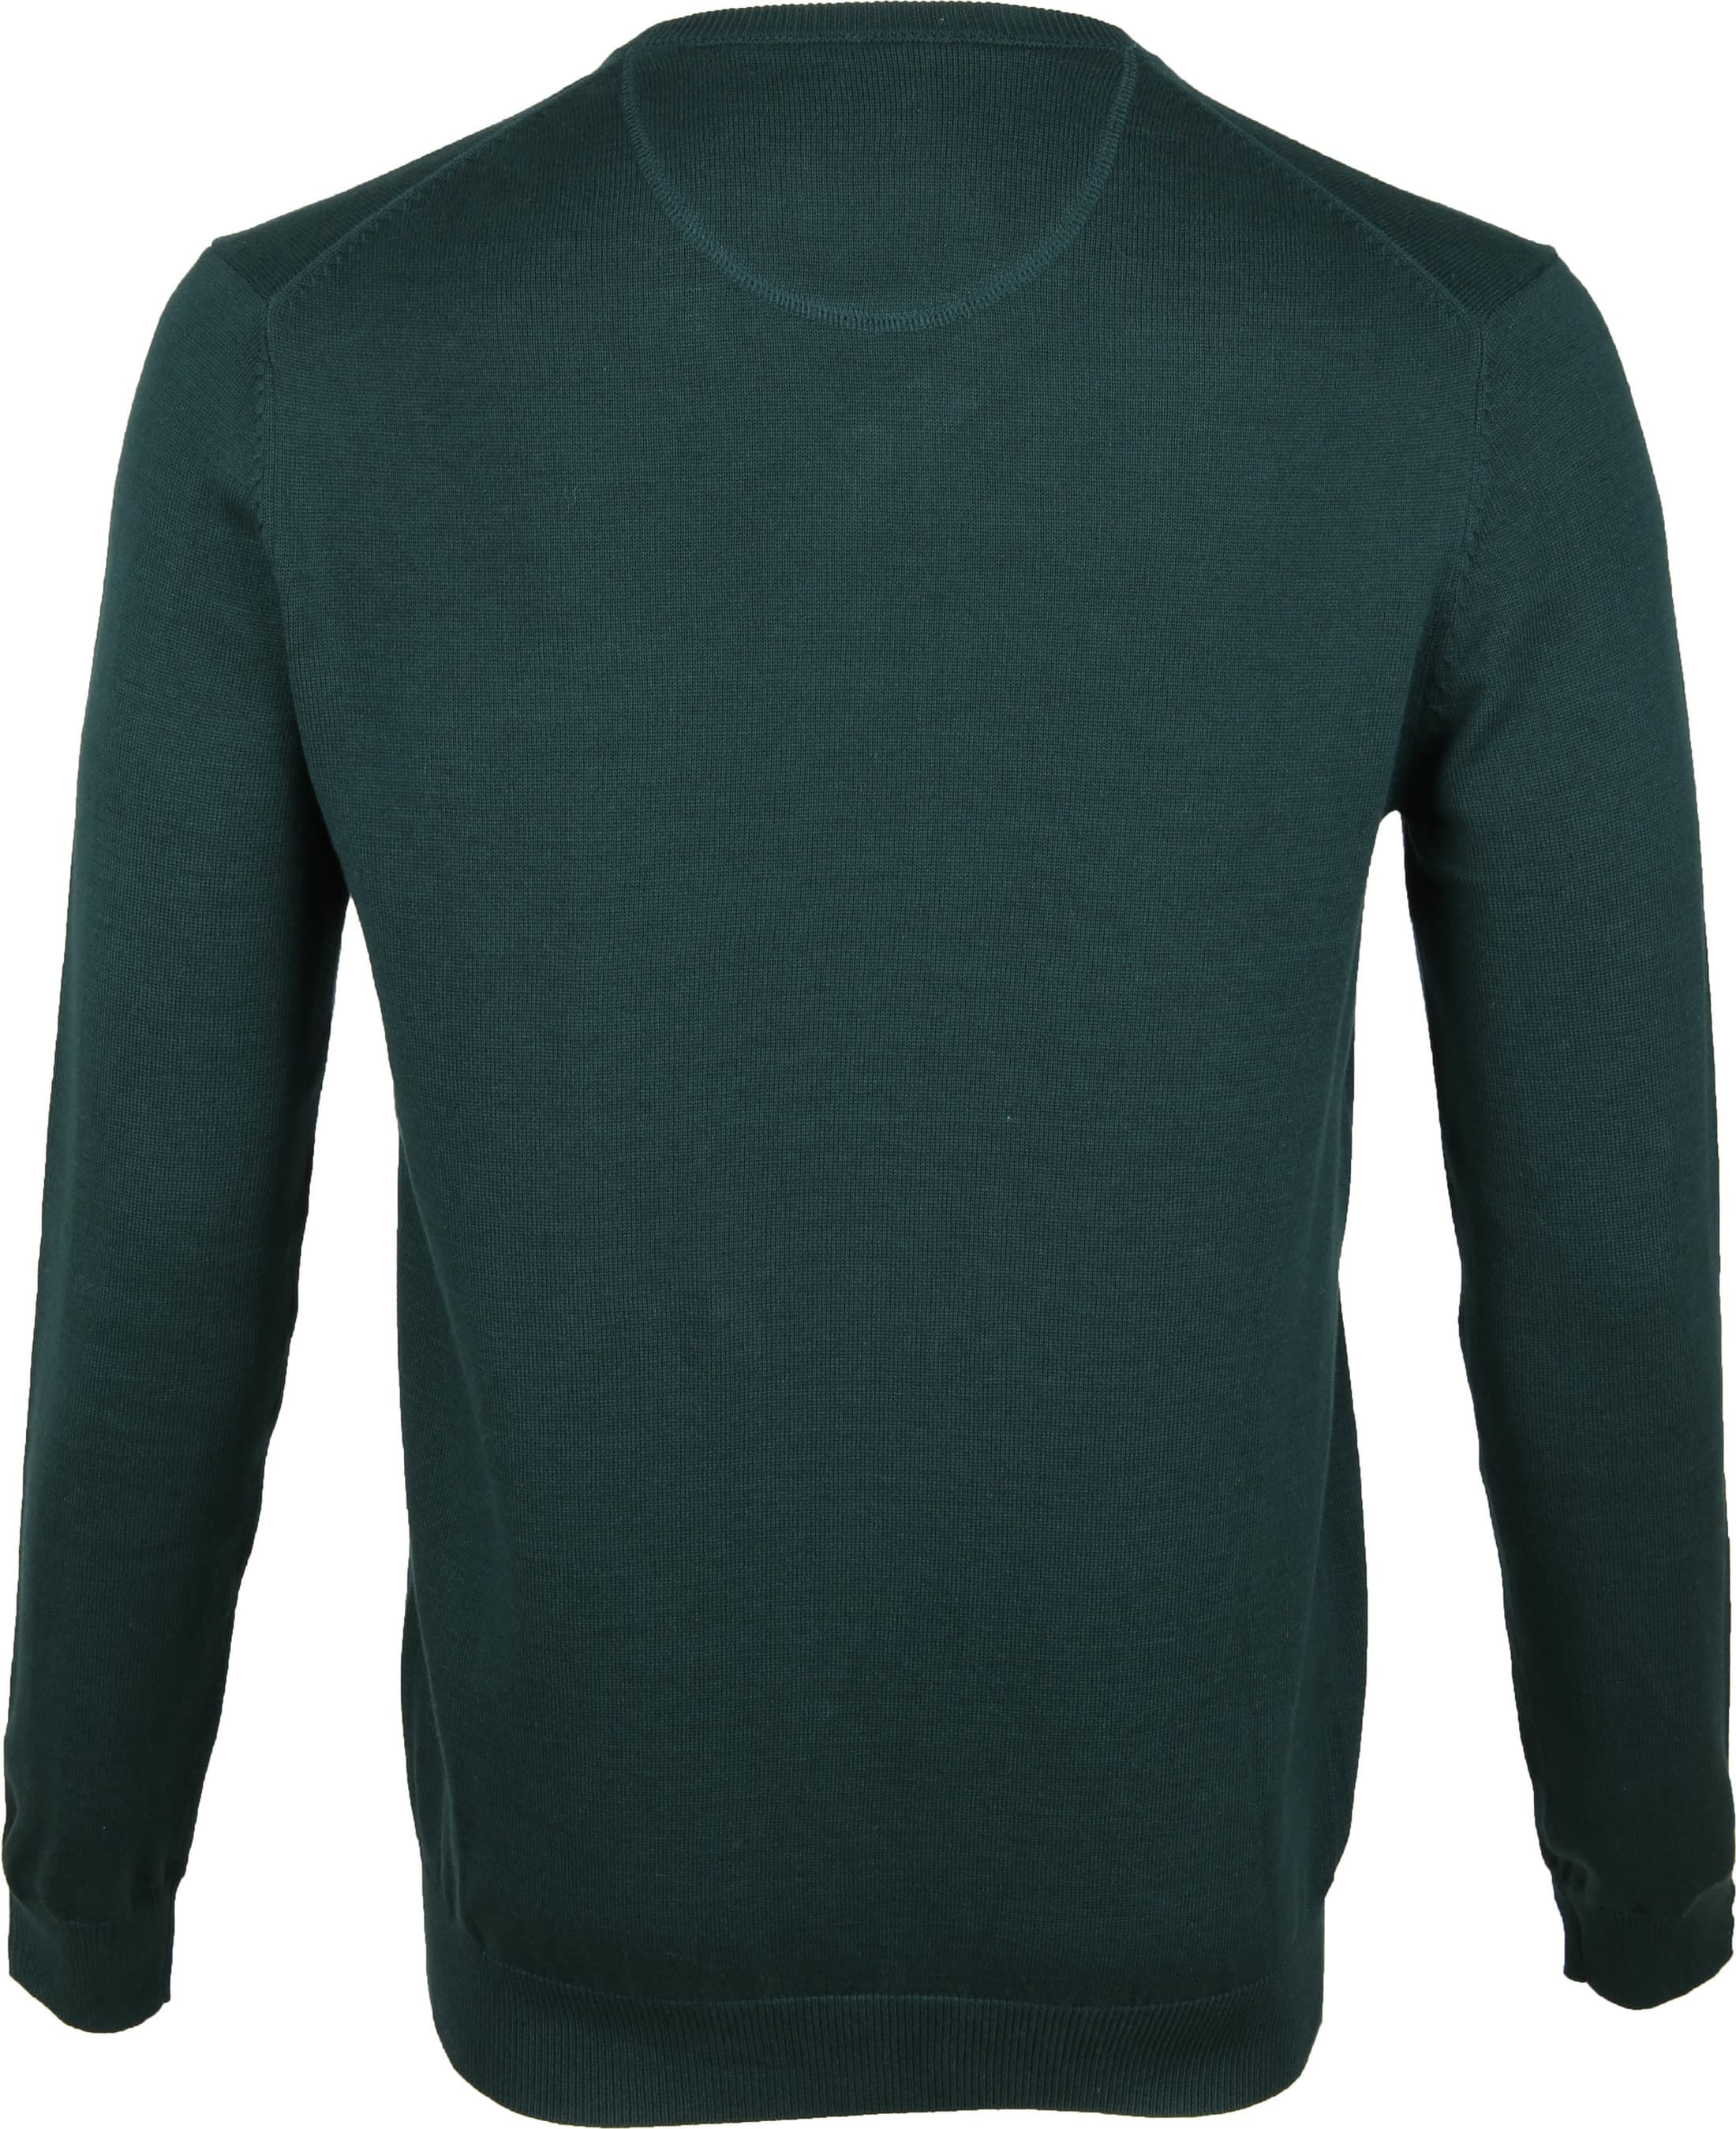 Suitable Vini Pullover Dark Green foto 3